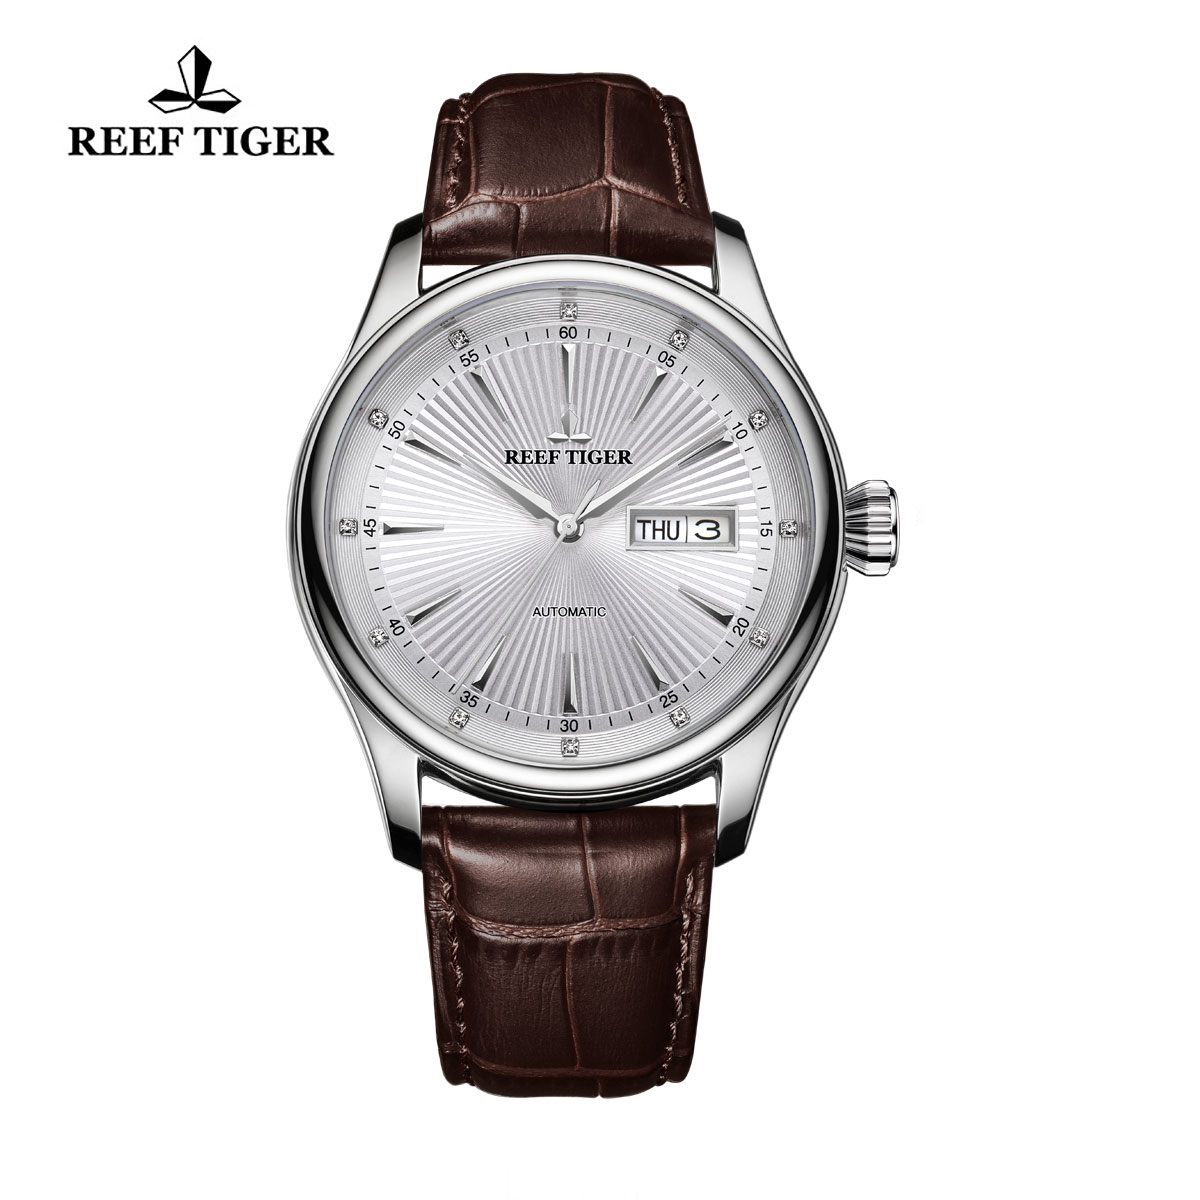 Reef Tiger Heritage II Dress Watch Automatic White Dial Calfskin Leather Steel Case RGA8232-YWB